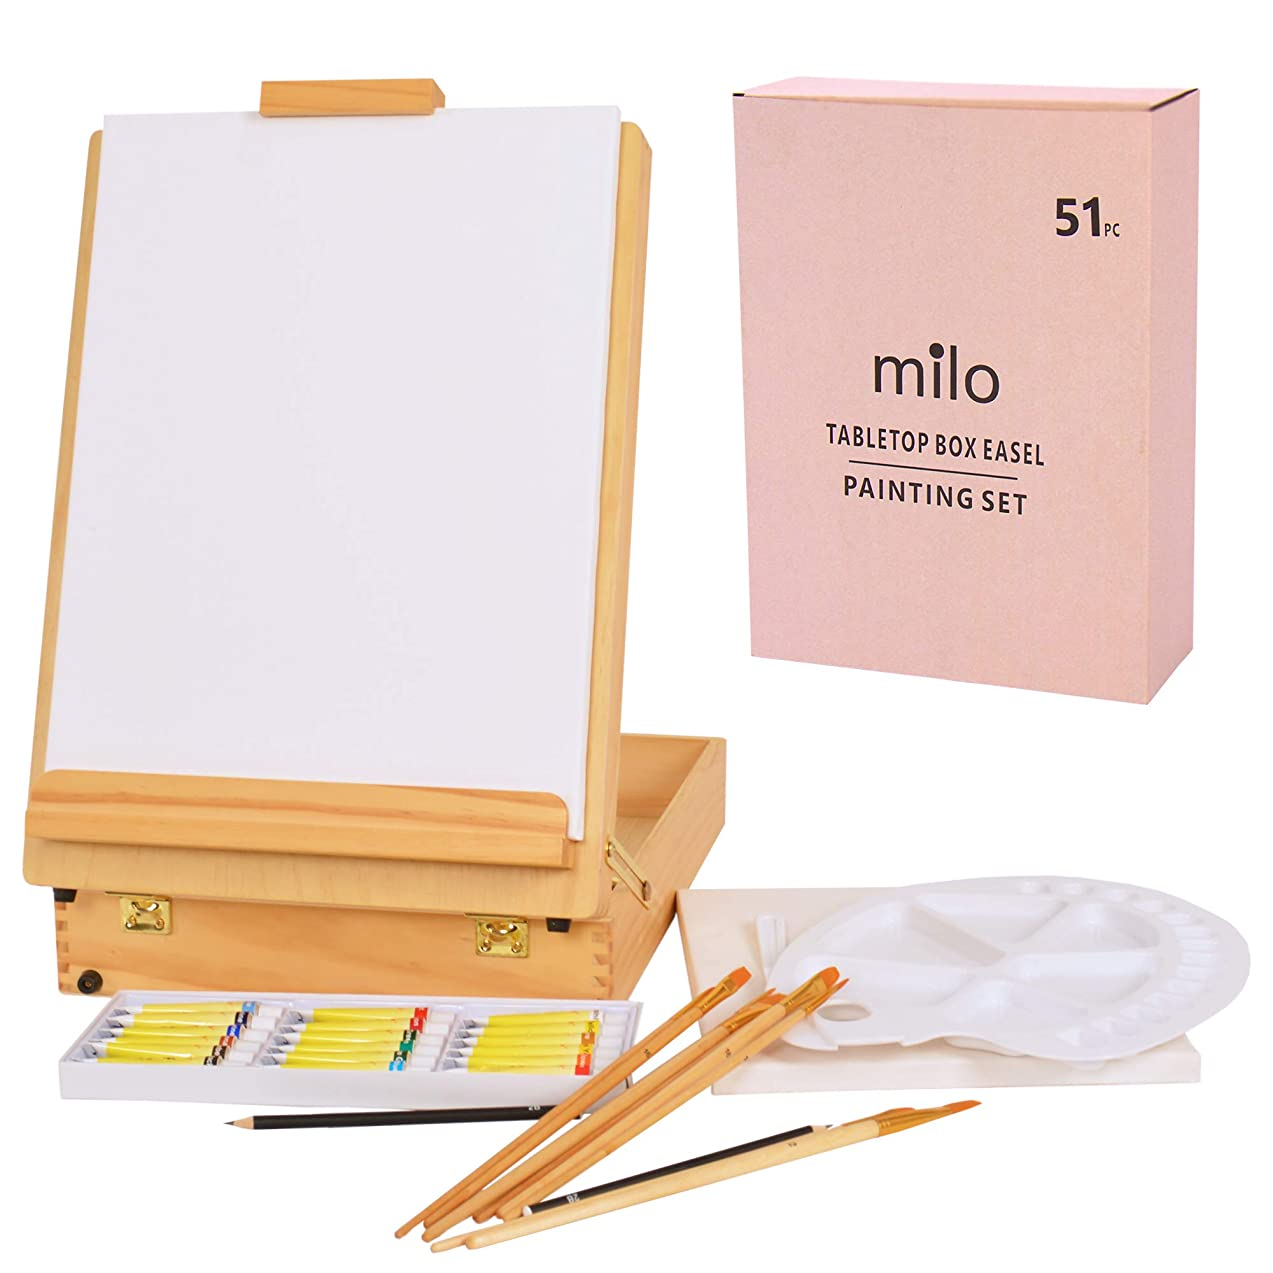 Milo   Tabletop Easel Box Art Set 51 Piece Painting Set   Includes Two Pre Stretched Canvases, Brush Set, Acrylic Paint Set, Easel